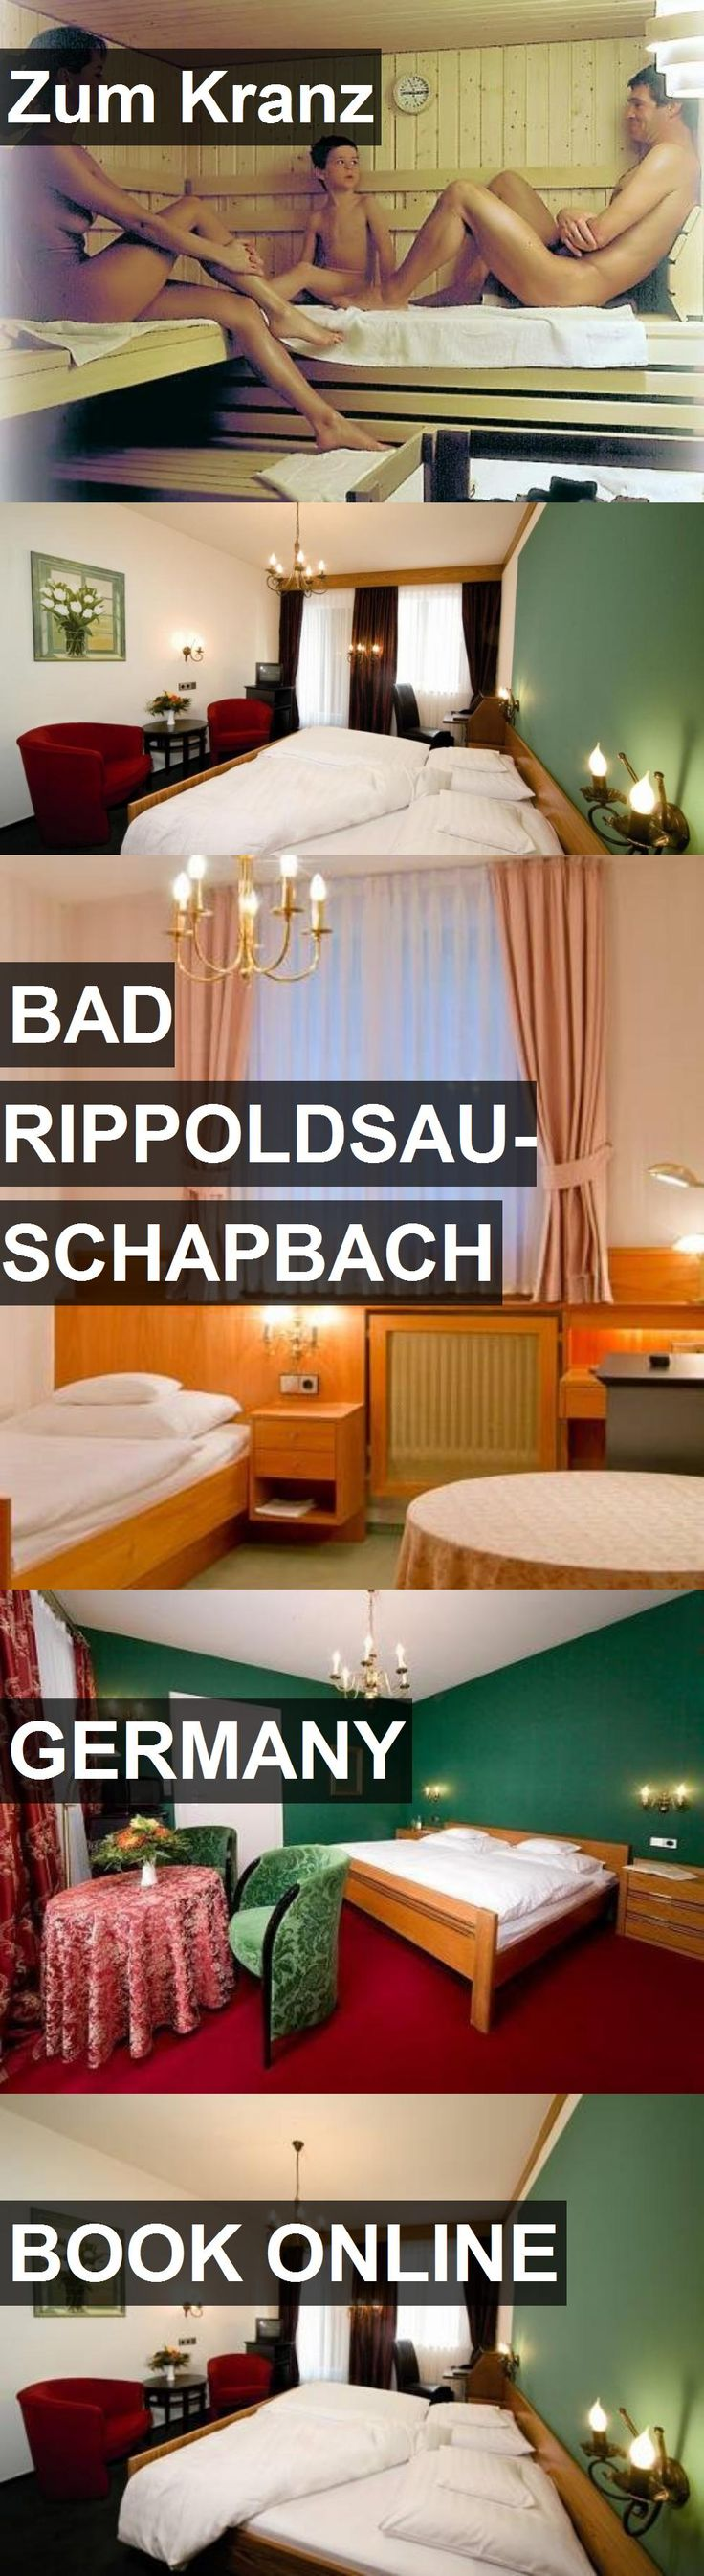 Hotel Zum Kranz in Bad Rippoldsau-Schapbach, Germany. For more information, photos, reviews and best prices please follow the link. #Germany #BadRippoldsau-Schapbach #ZumKranz #hotel #travel #vacation